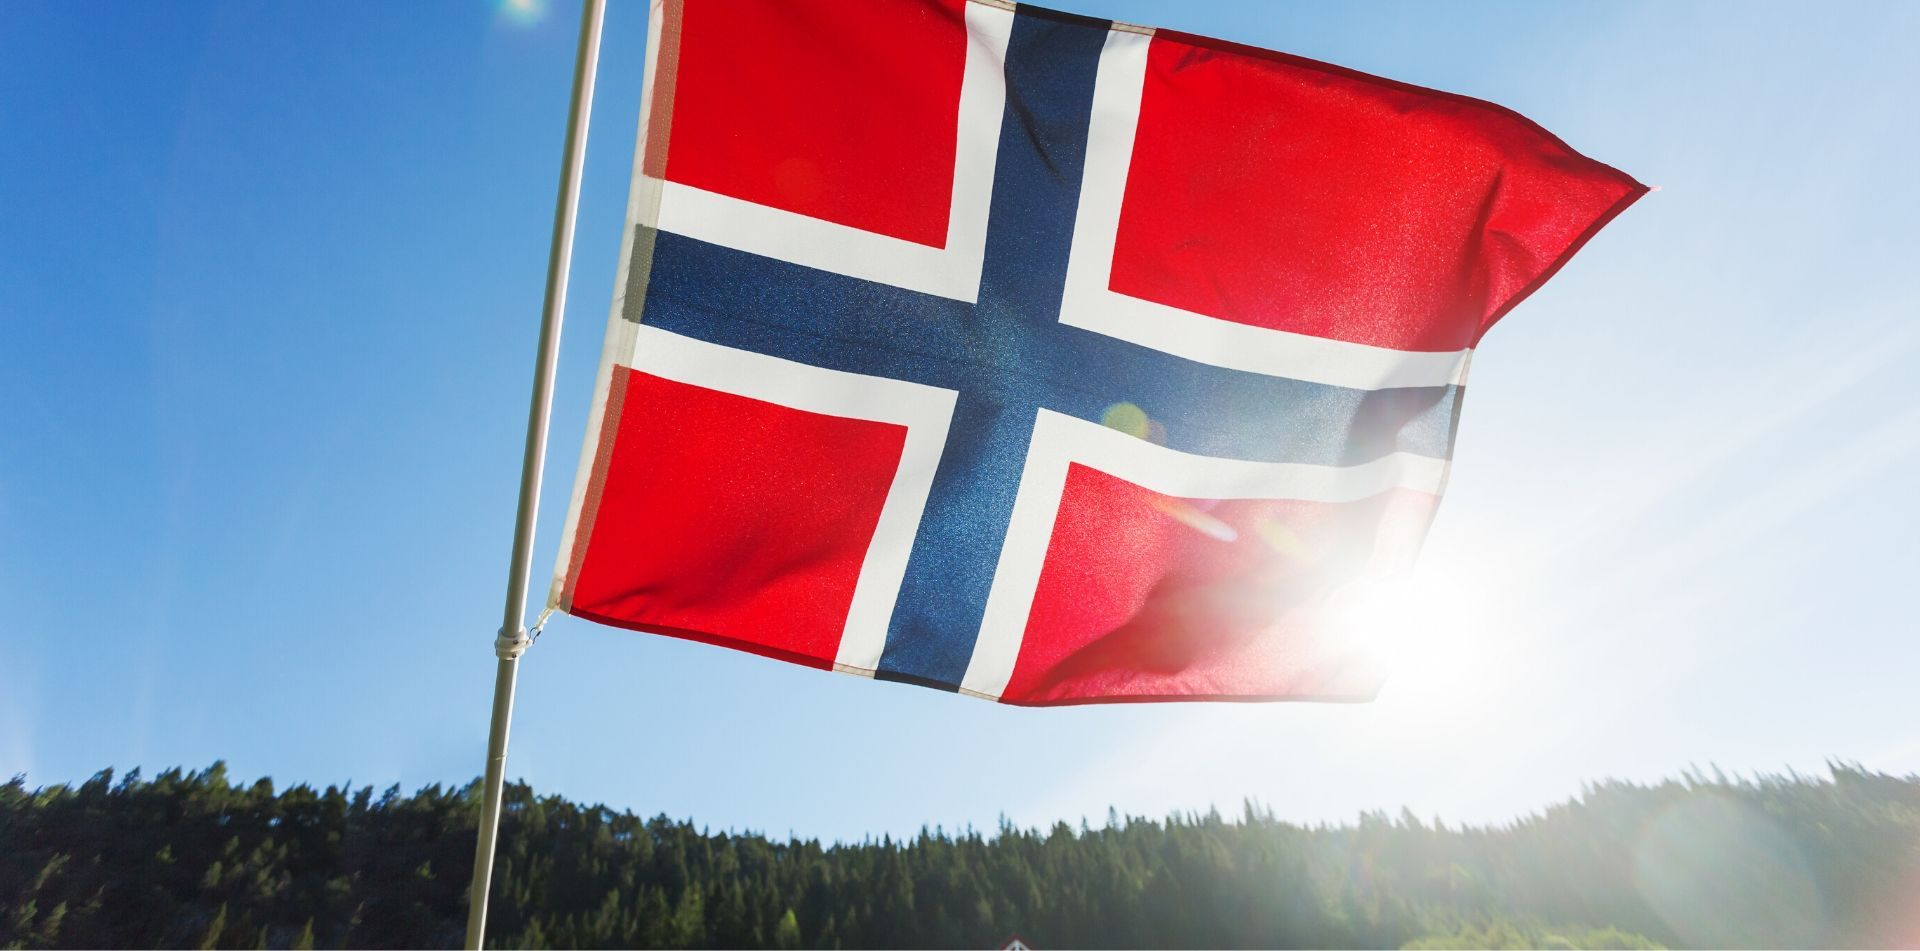 Europe Norway flag blowing in the wind in front of treeline - luxury vacation destinations